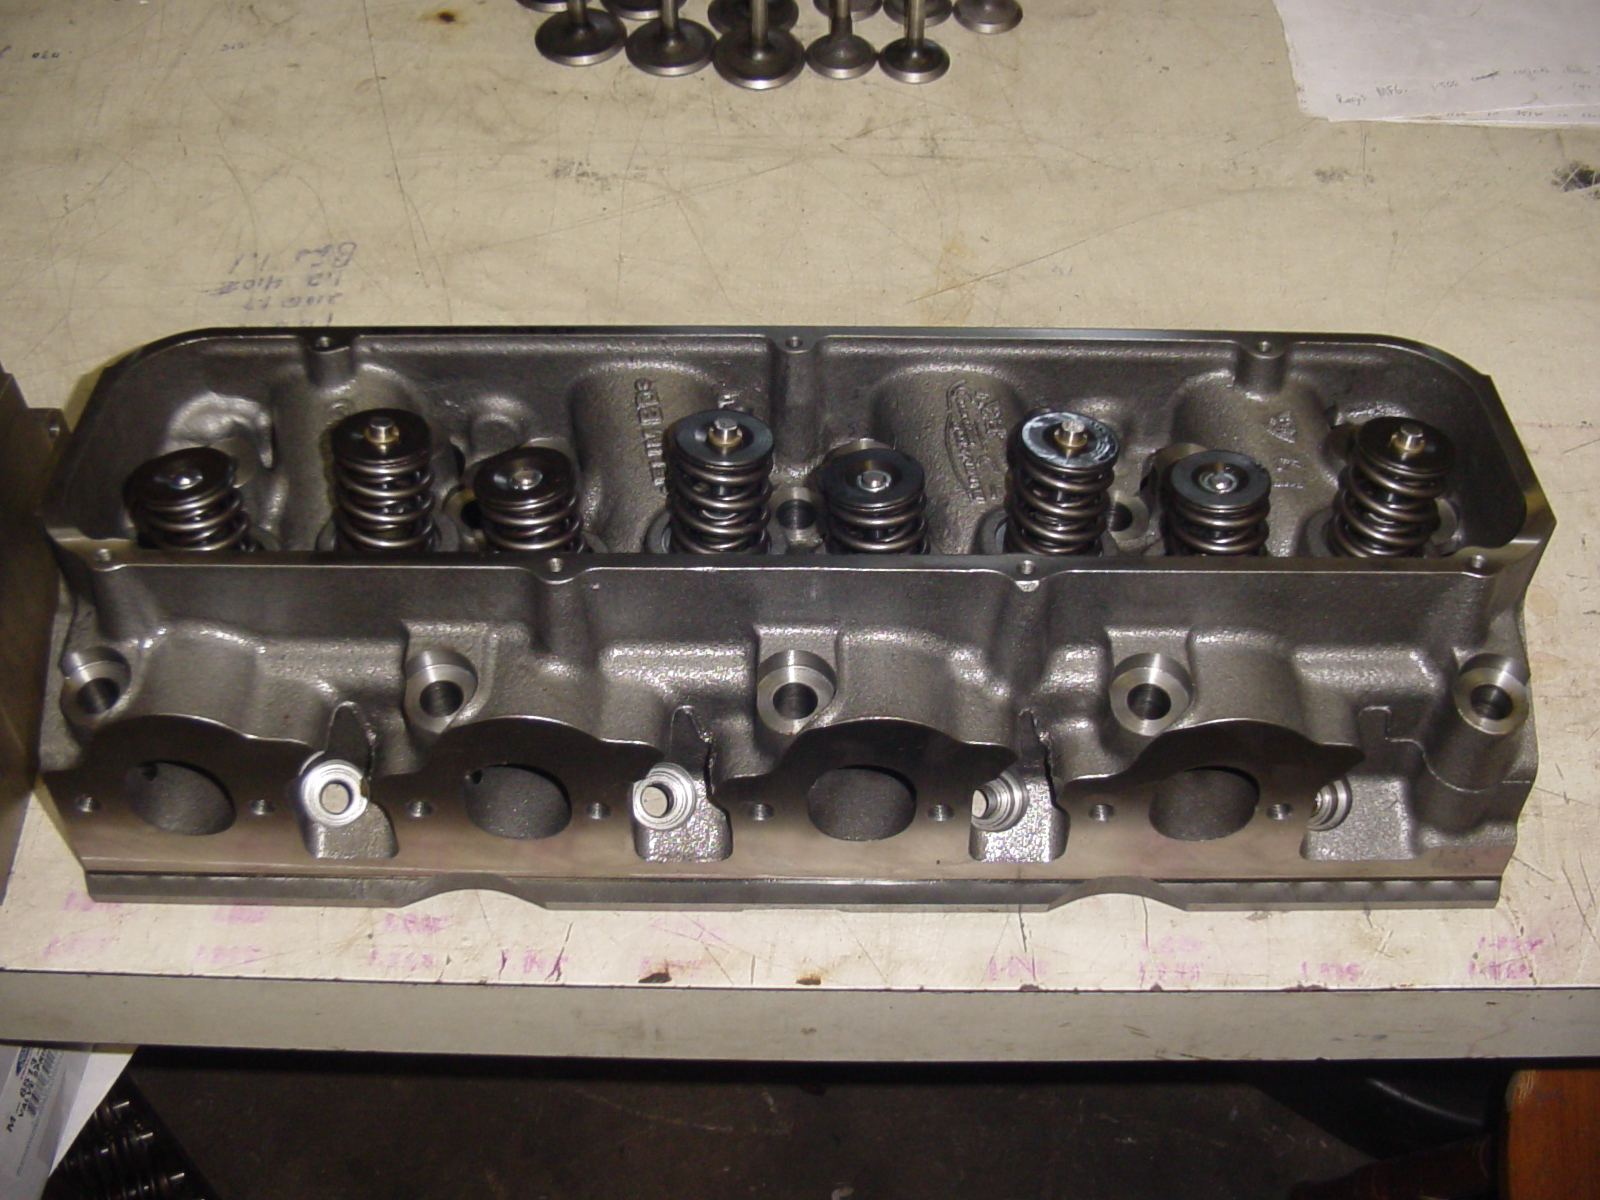 460 ford cast iron cylinder heads / Yes man subtitles